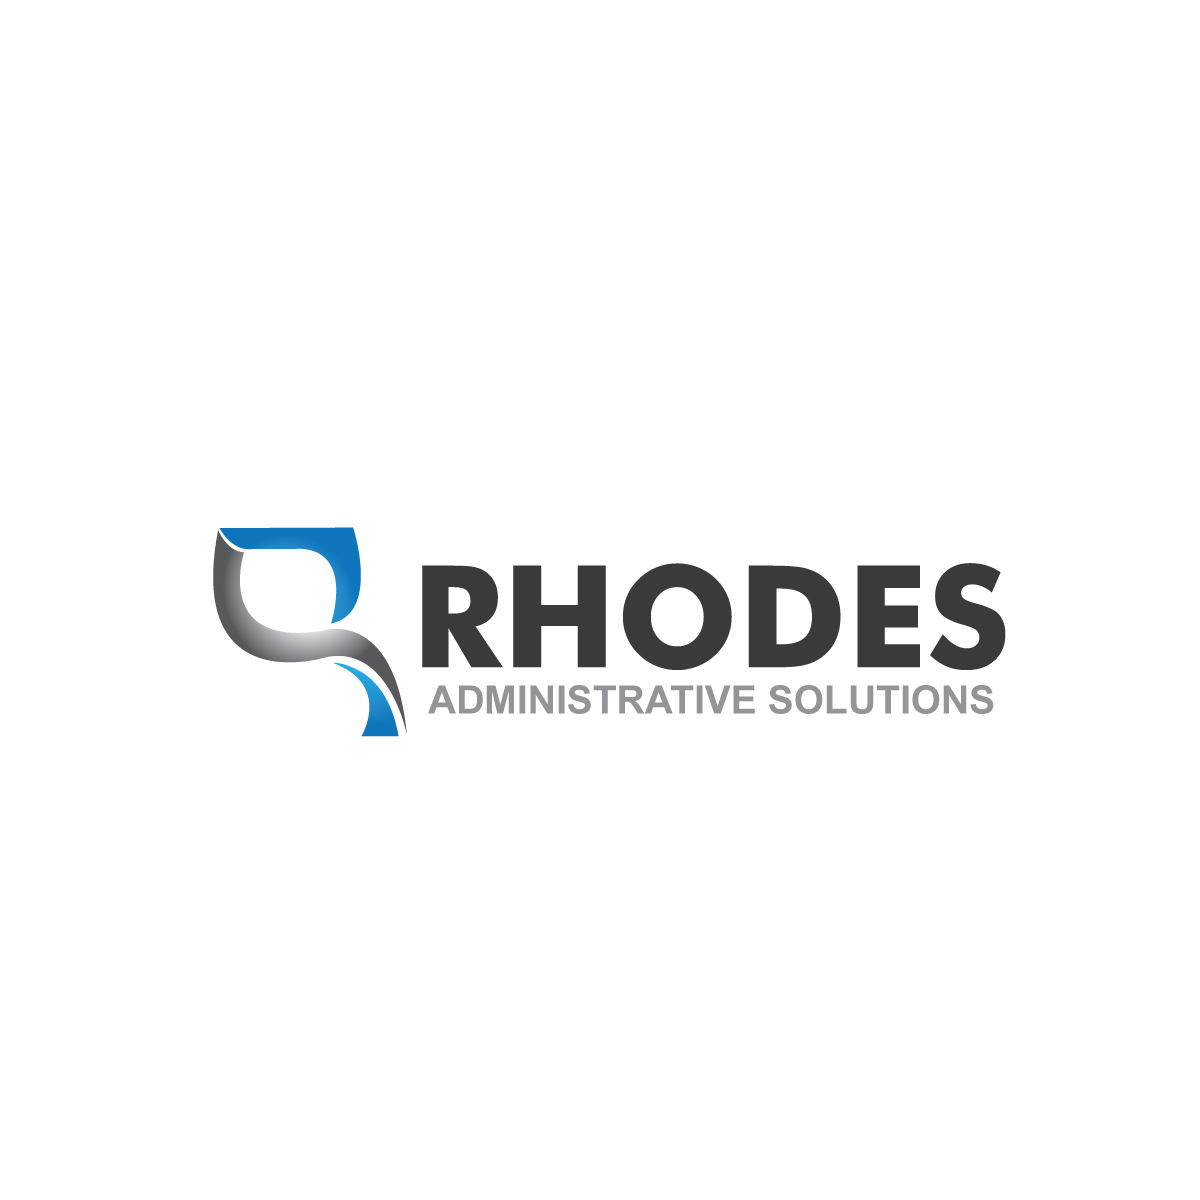 Logo Design by stormbighit - Entry No. 96 in the Logo Design Contest Rhodes Administrative Solutions.